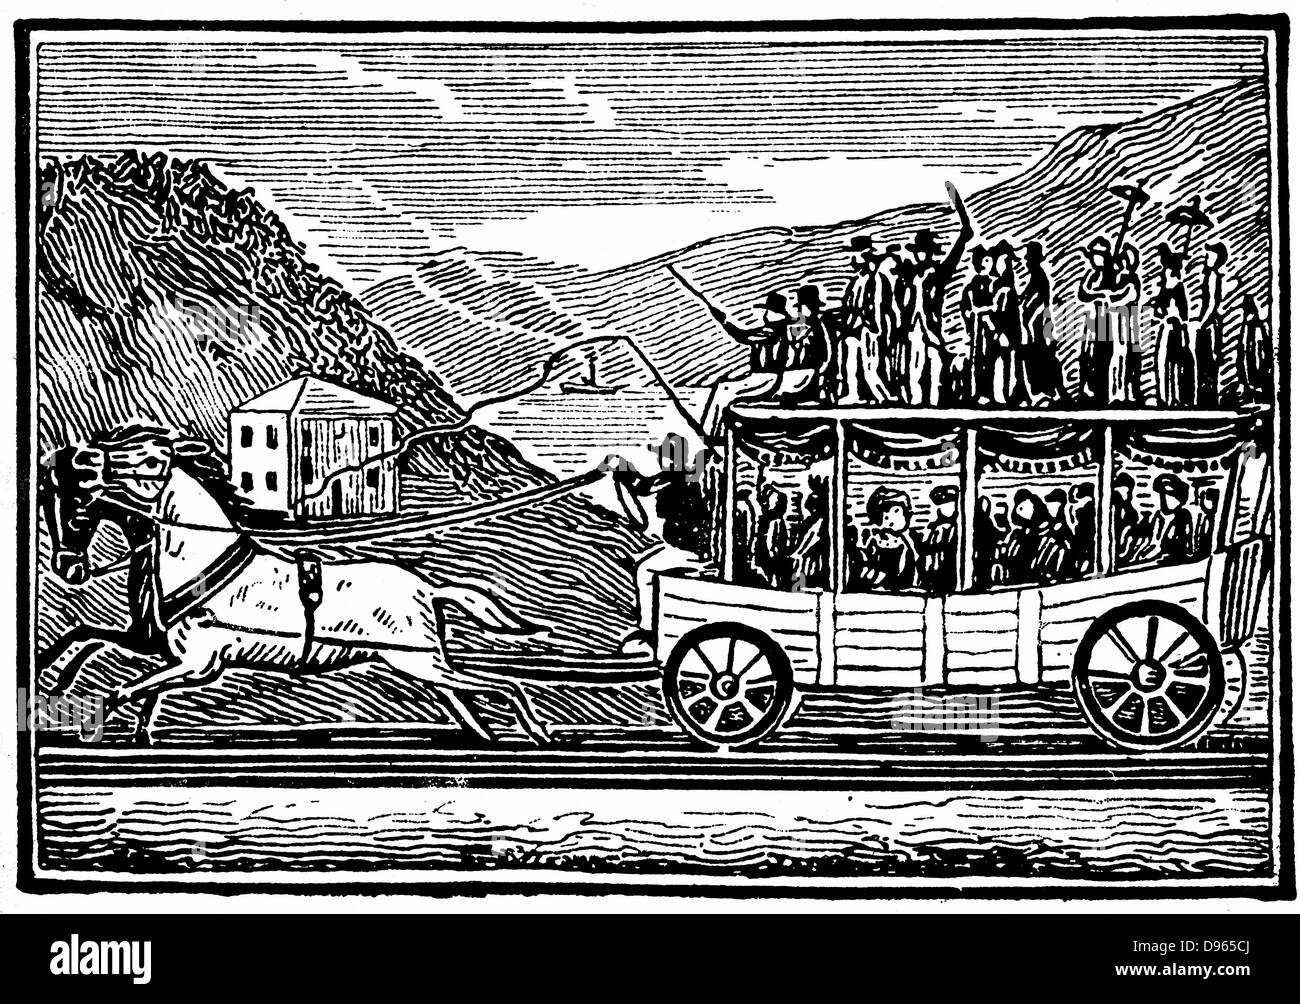 Horse-drawn carriage on the Baltimore and Ohio Railroad (1830-1835). Woodcut - Stock Image